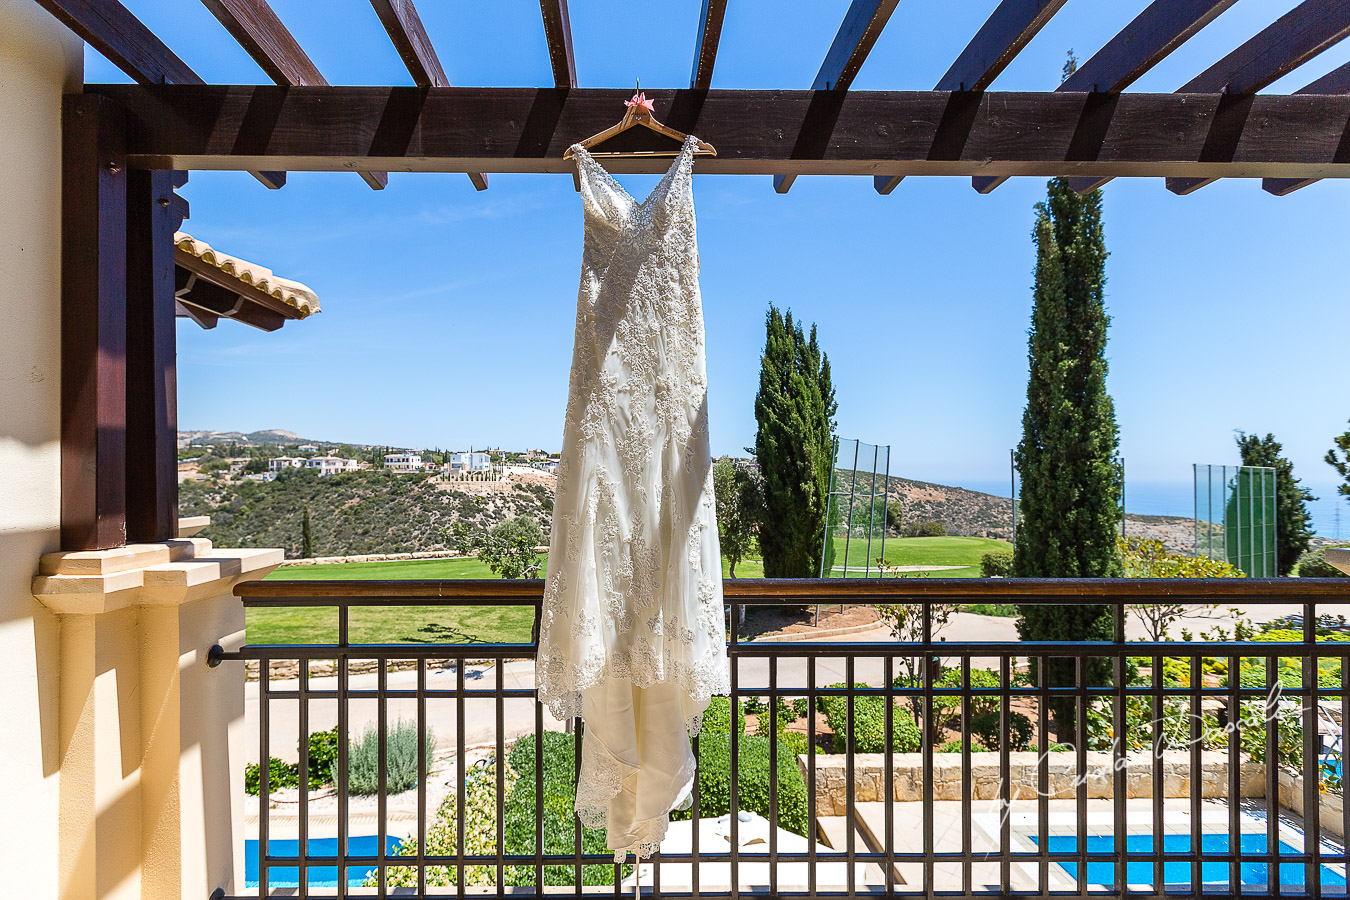 Bride's details at Aphrodite Hills Resort captured during a wedding by Cristian Dascalu.